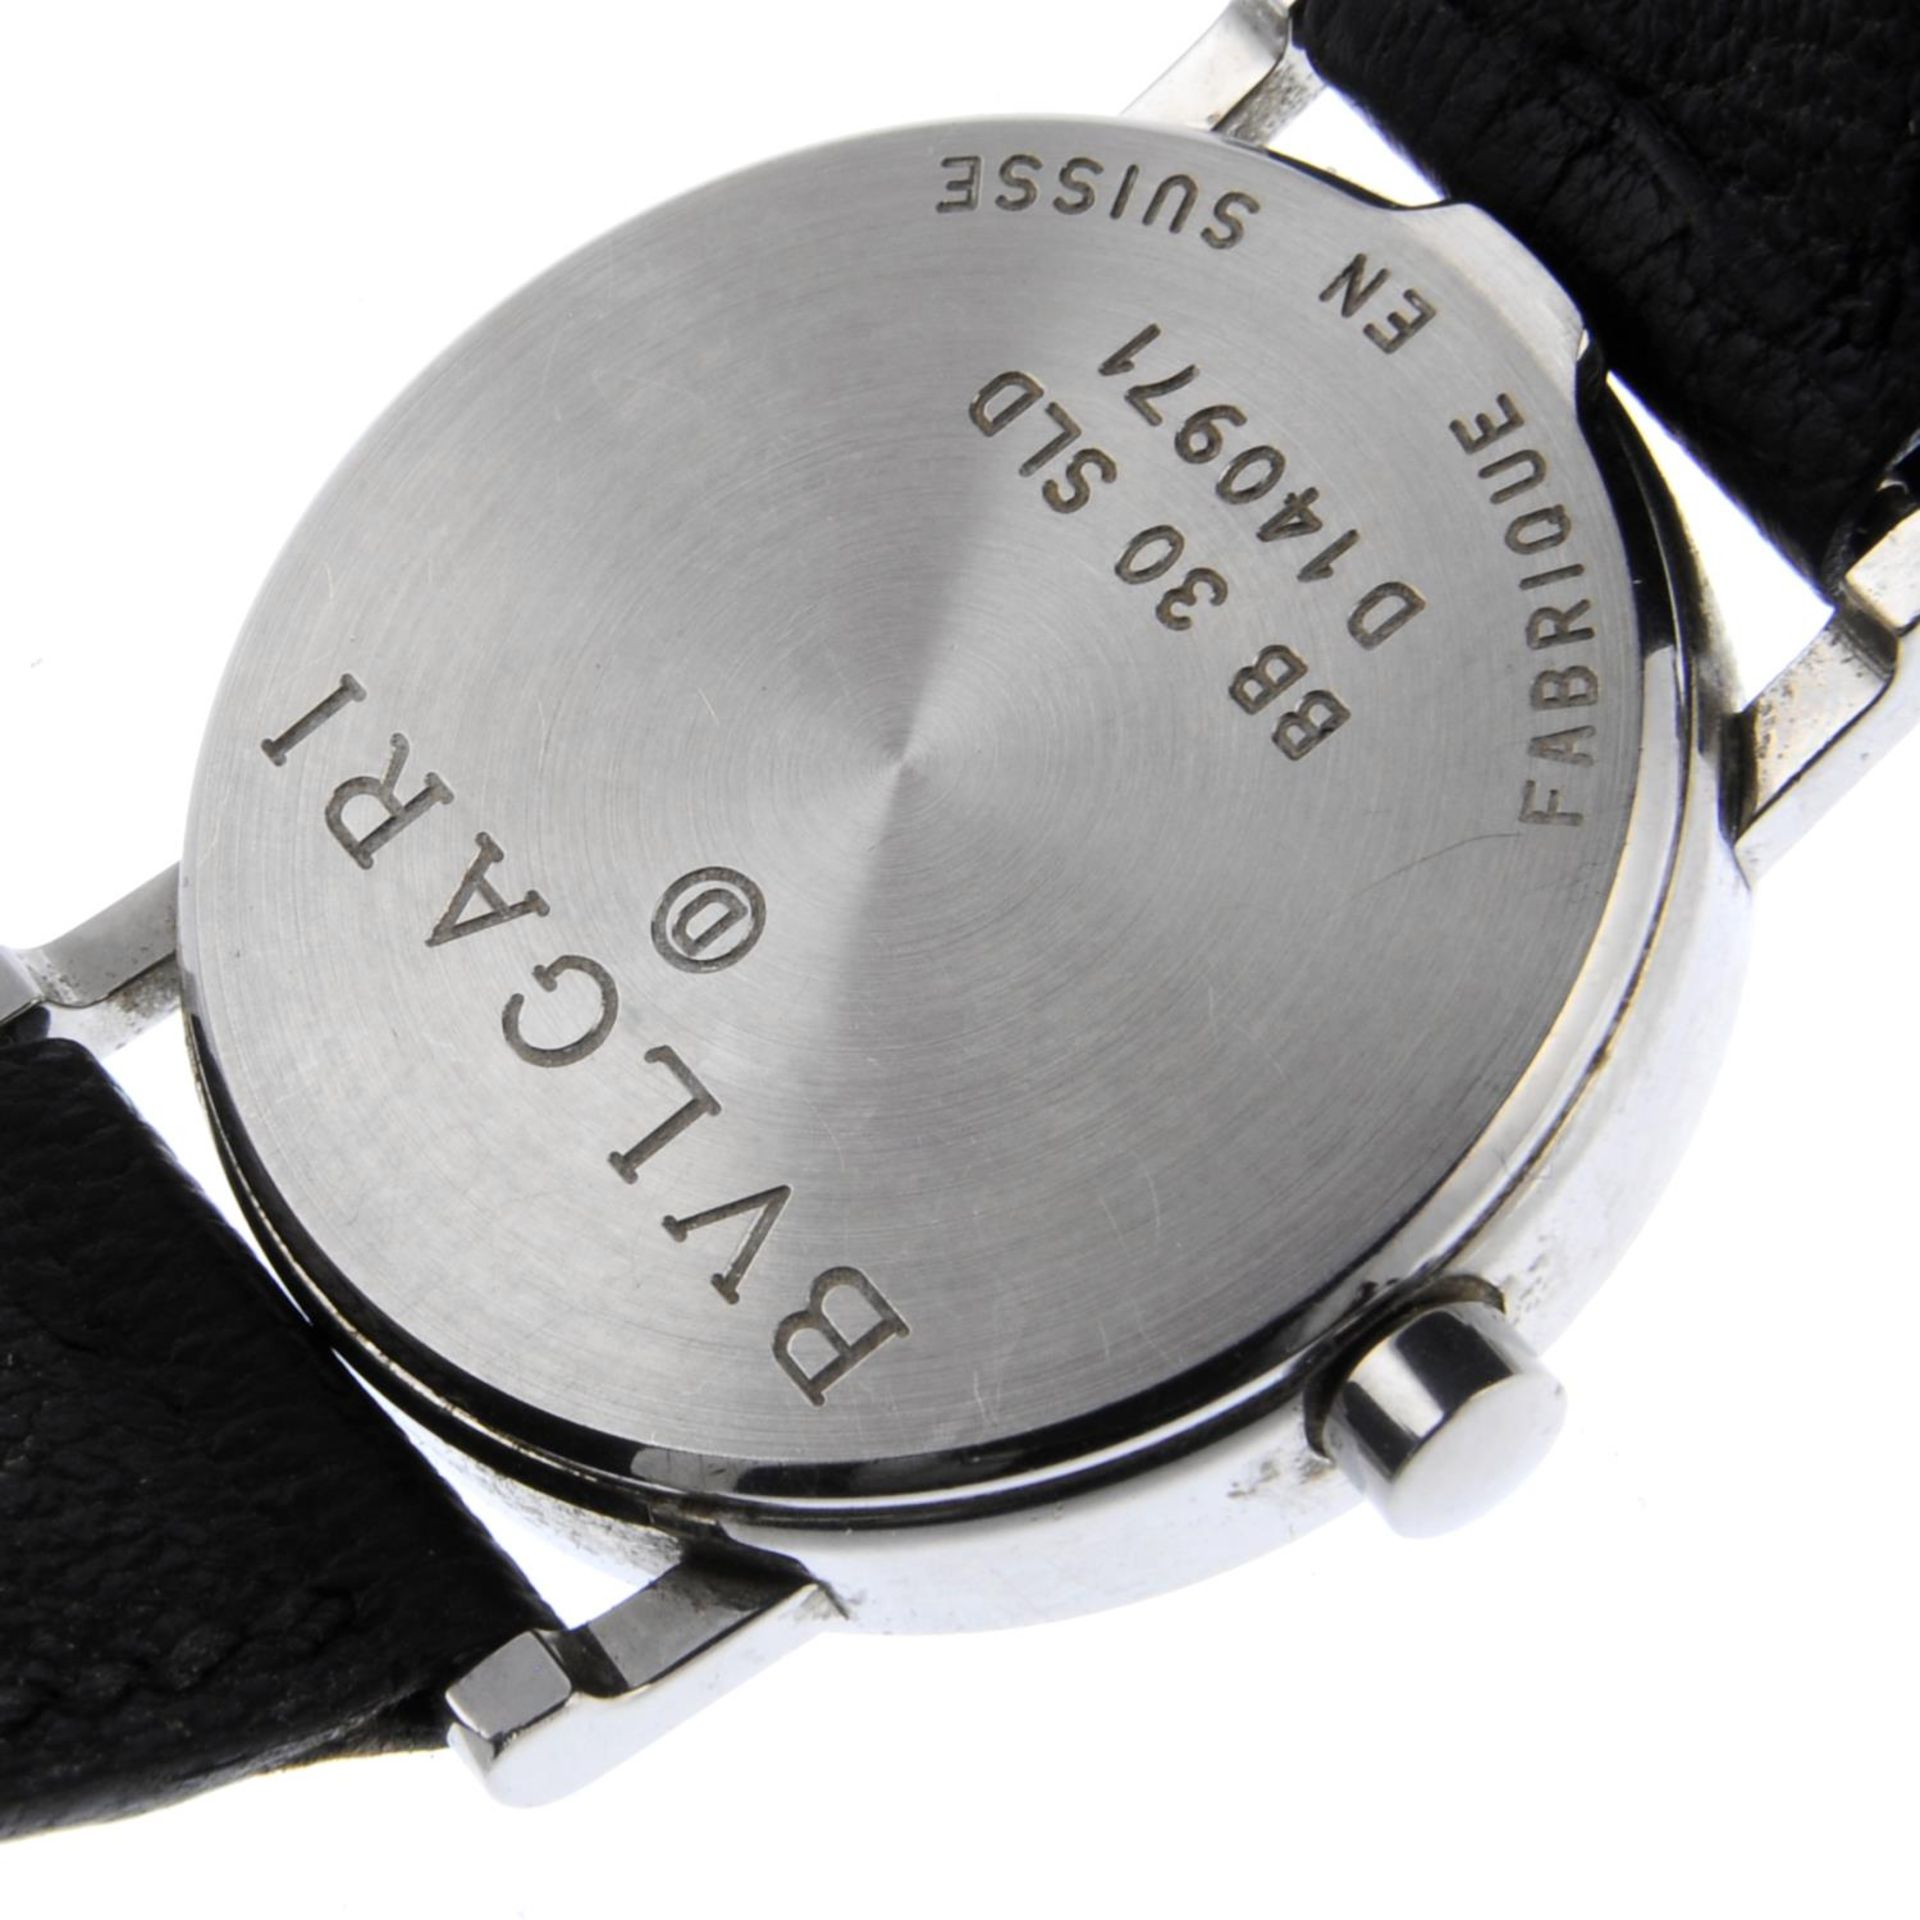 Los 12 - BULGARI - a mid-size Bulgari wrist watch.